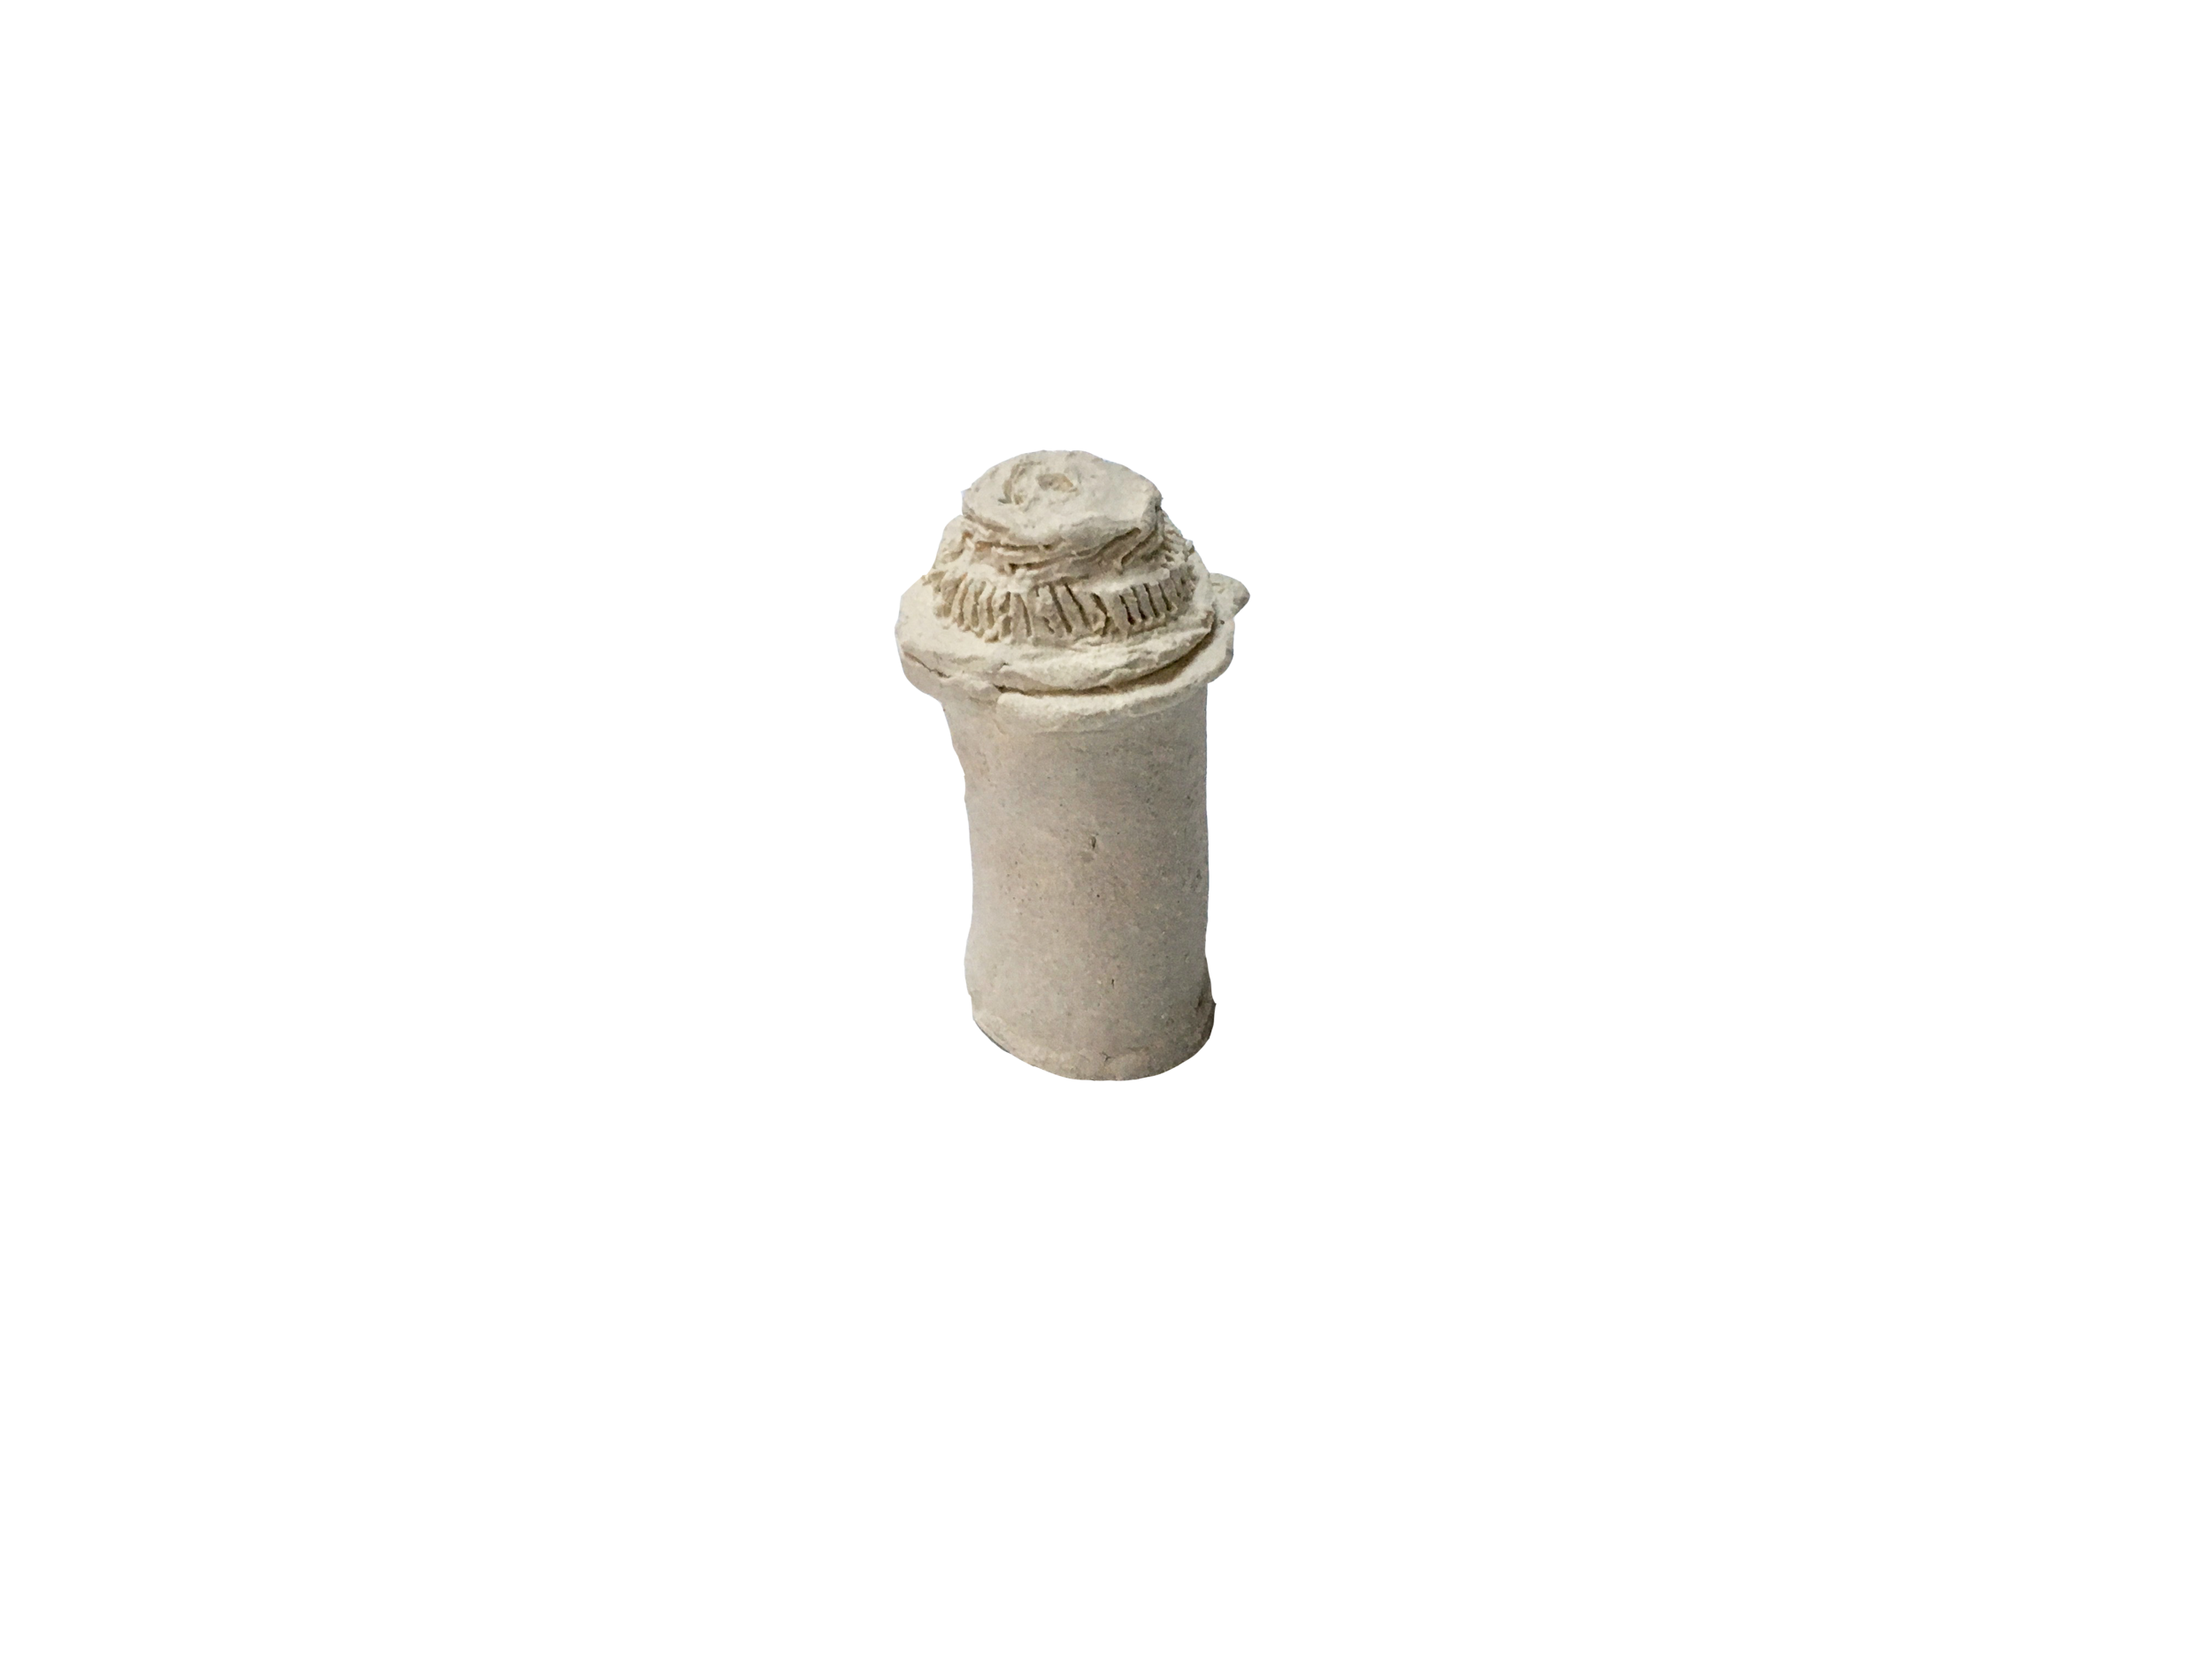 pill bottle_Marciano_12_12_18_rivera.png